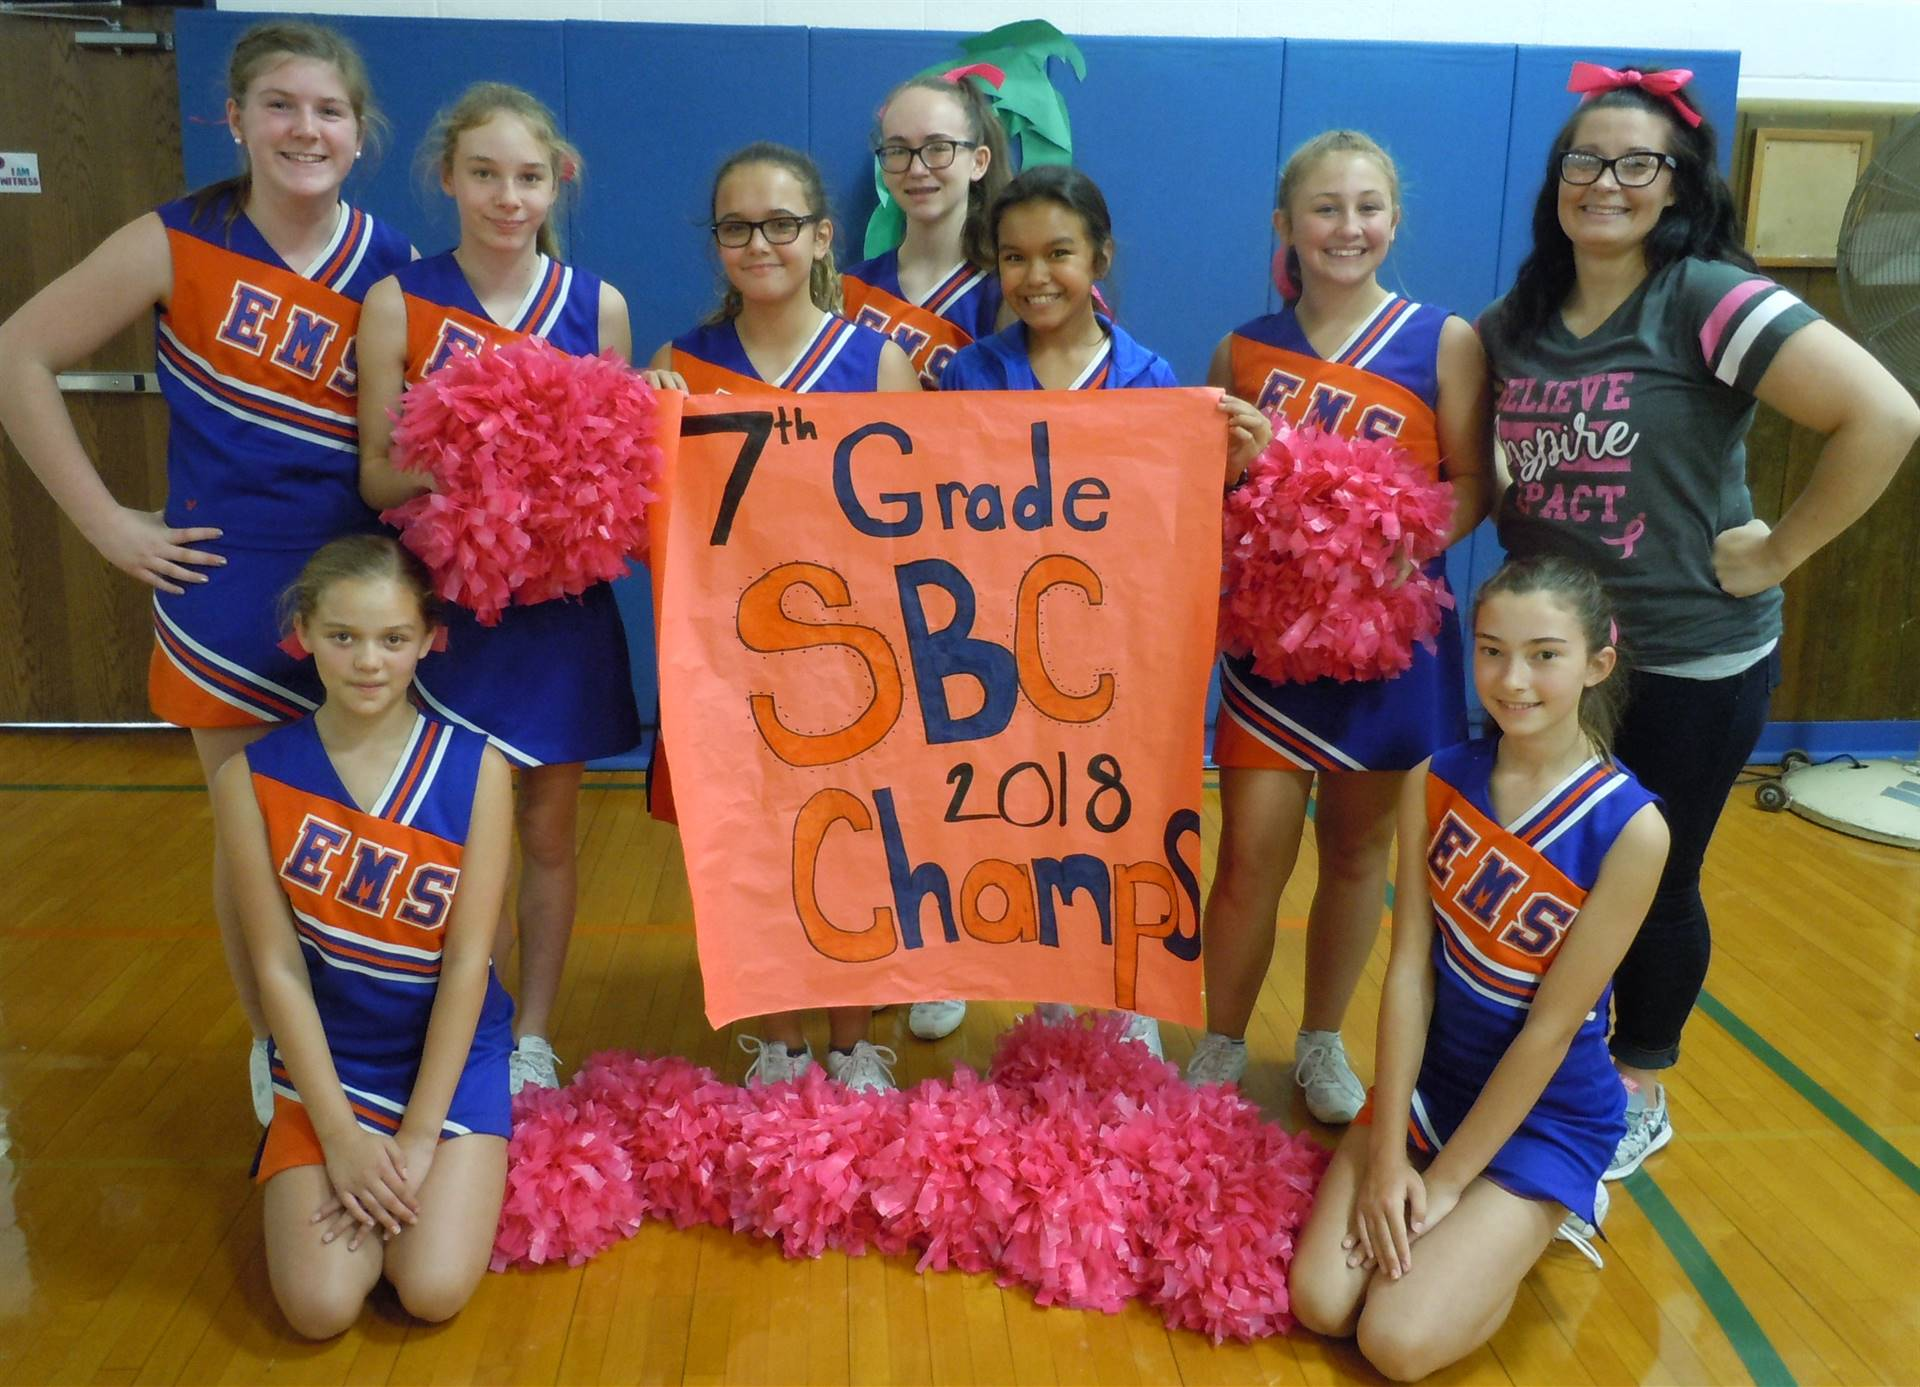 7th Grade Fall Cheerleaders